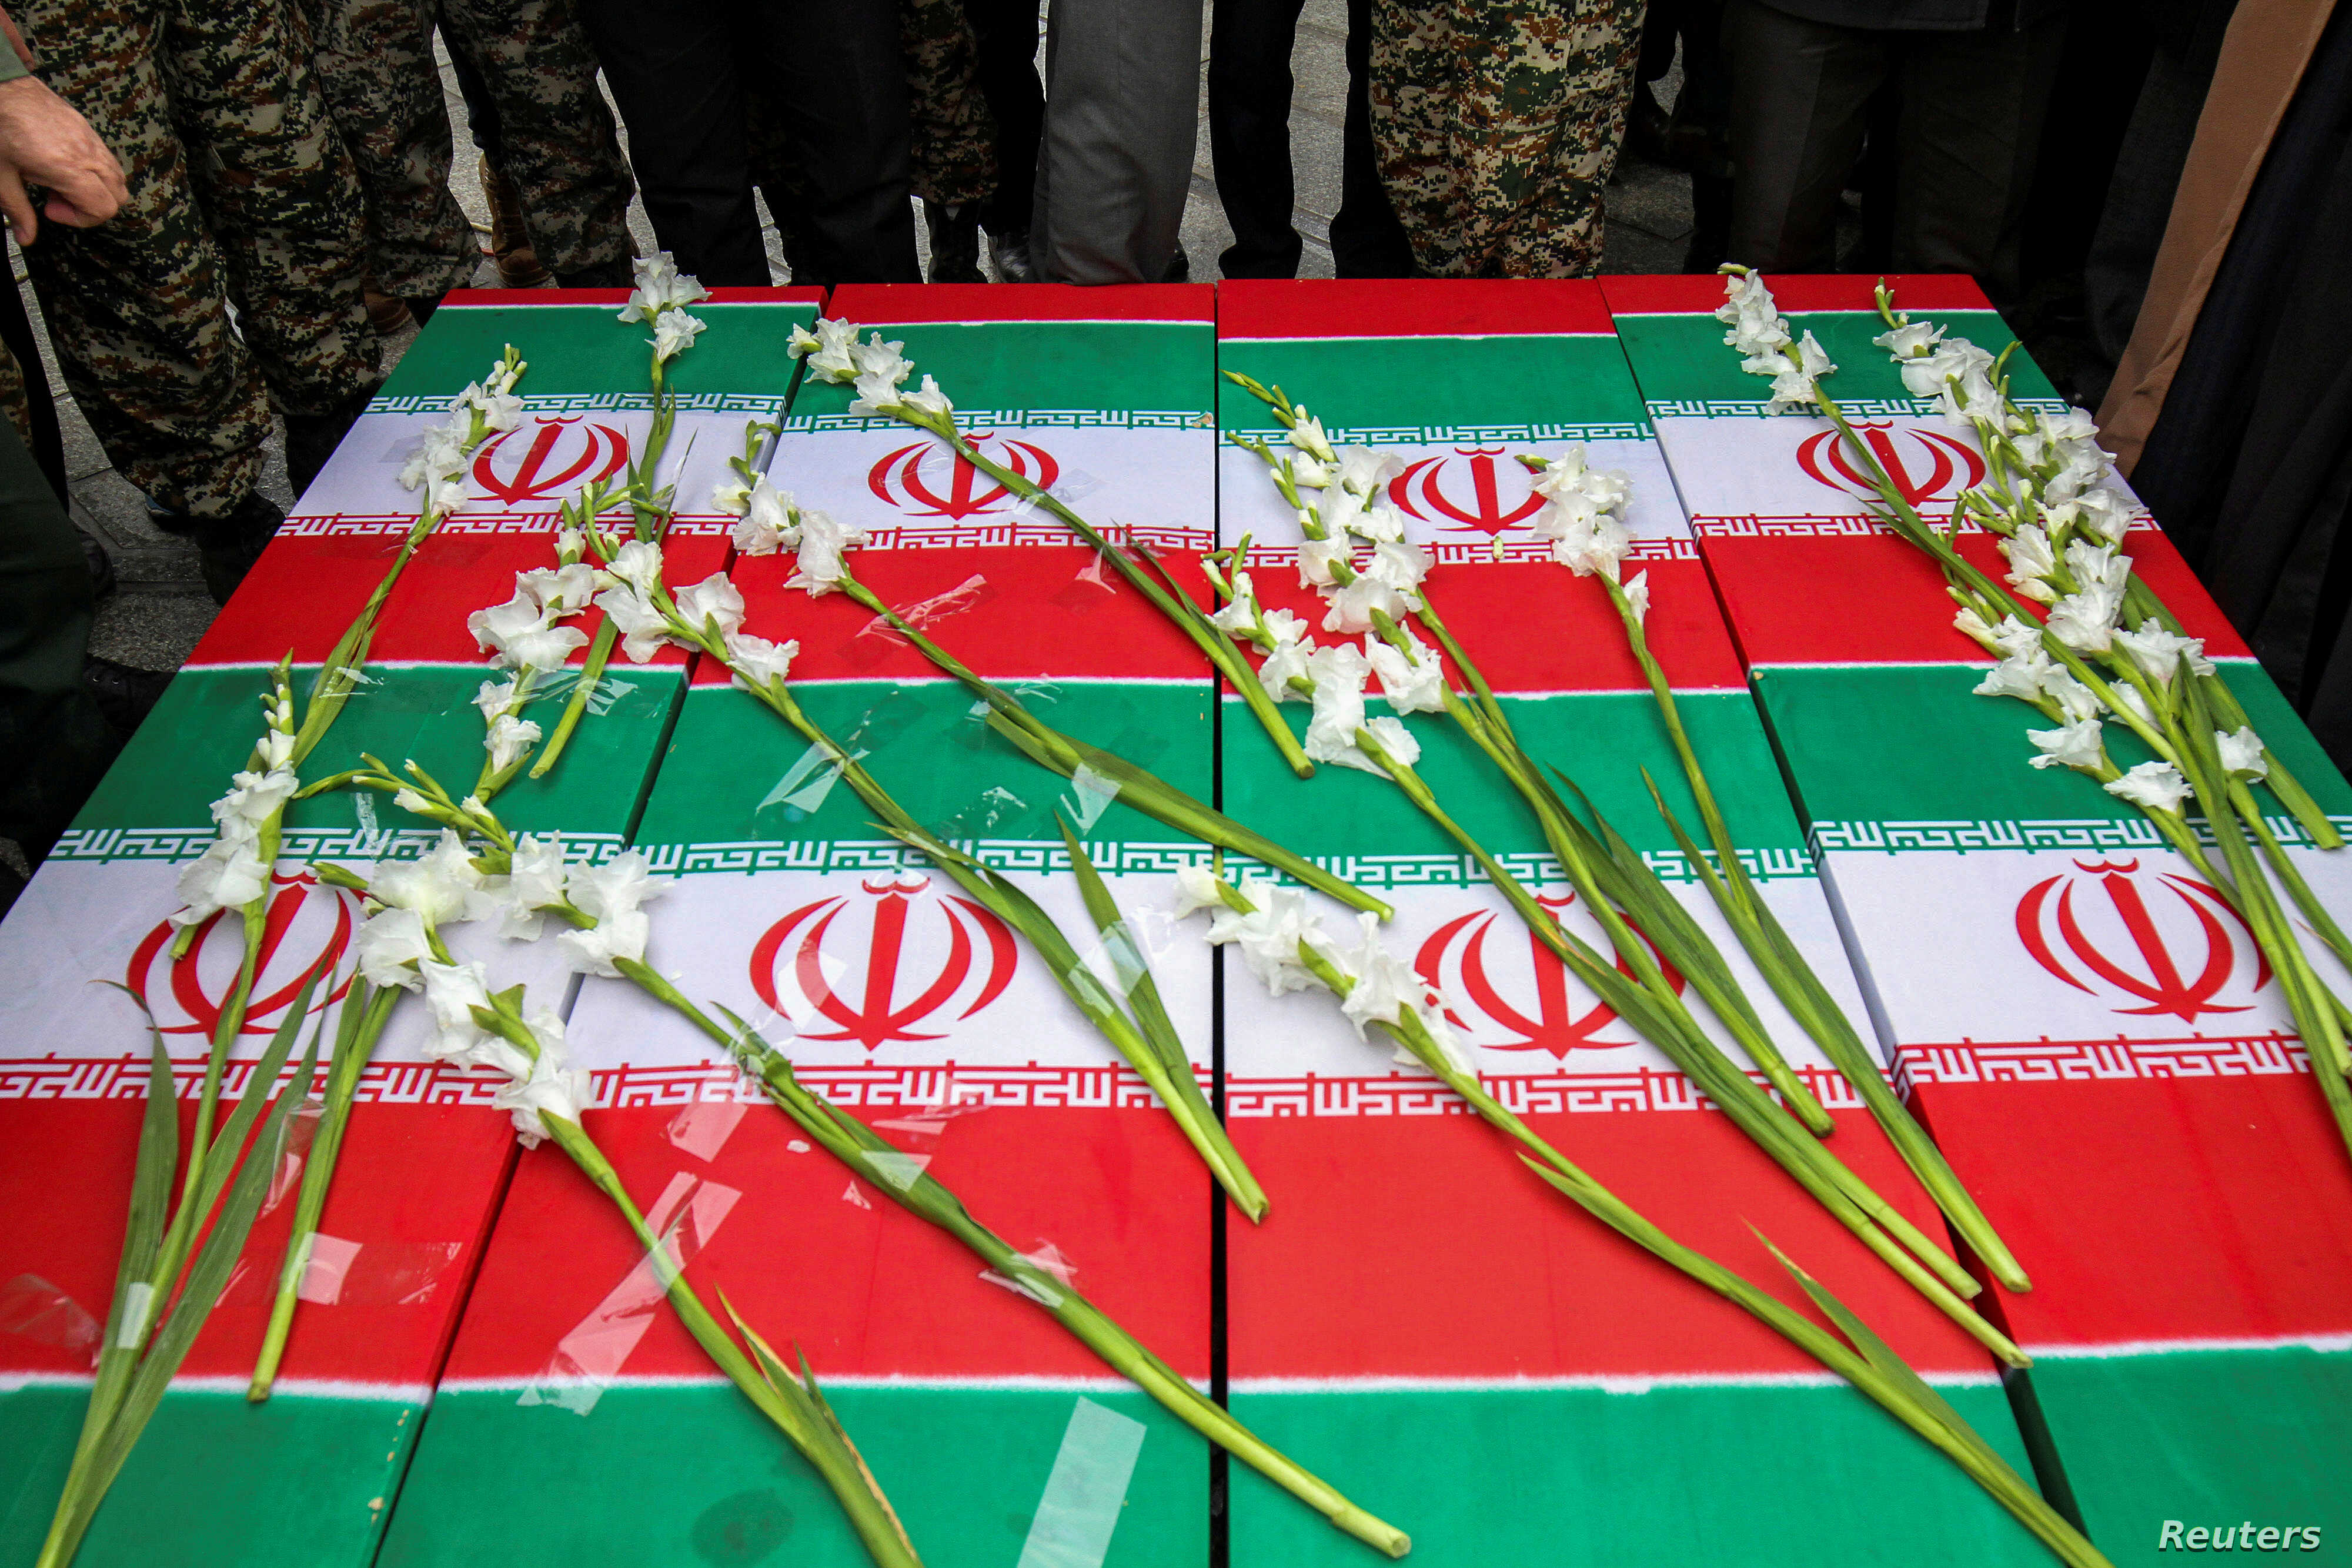 Coffins of four Iranian victims of the downing by Iran of a Ukrainian airliner are seen during the victims' funeral in Hamadan, Iran, Jan. 16, 2020.